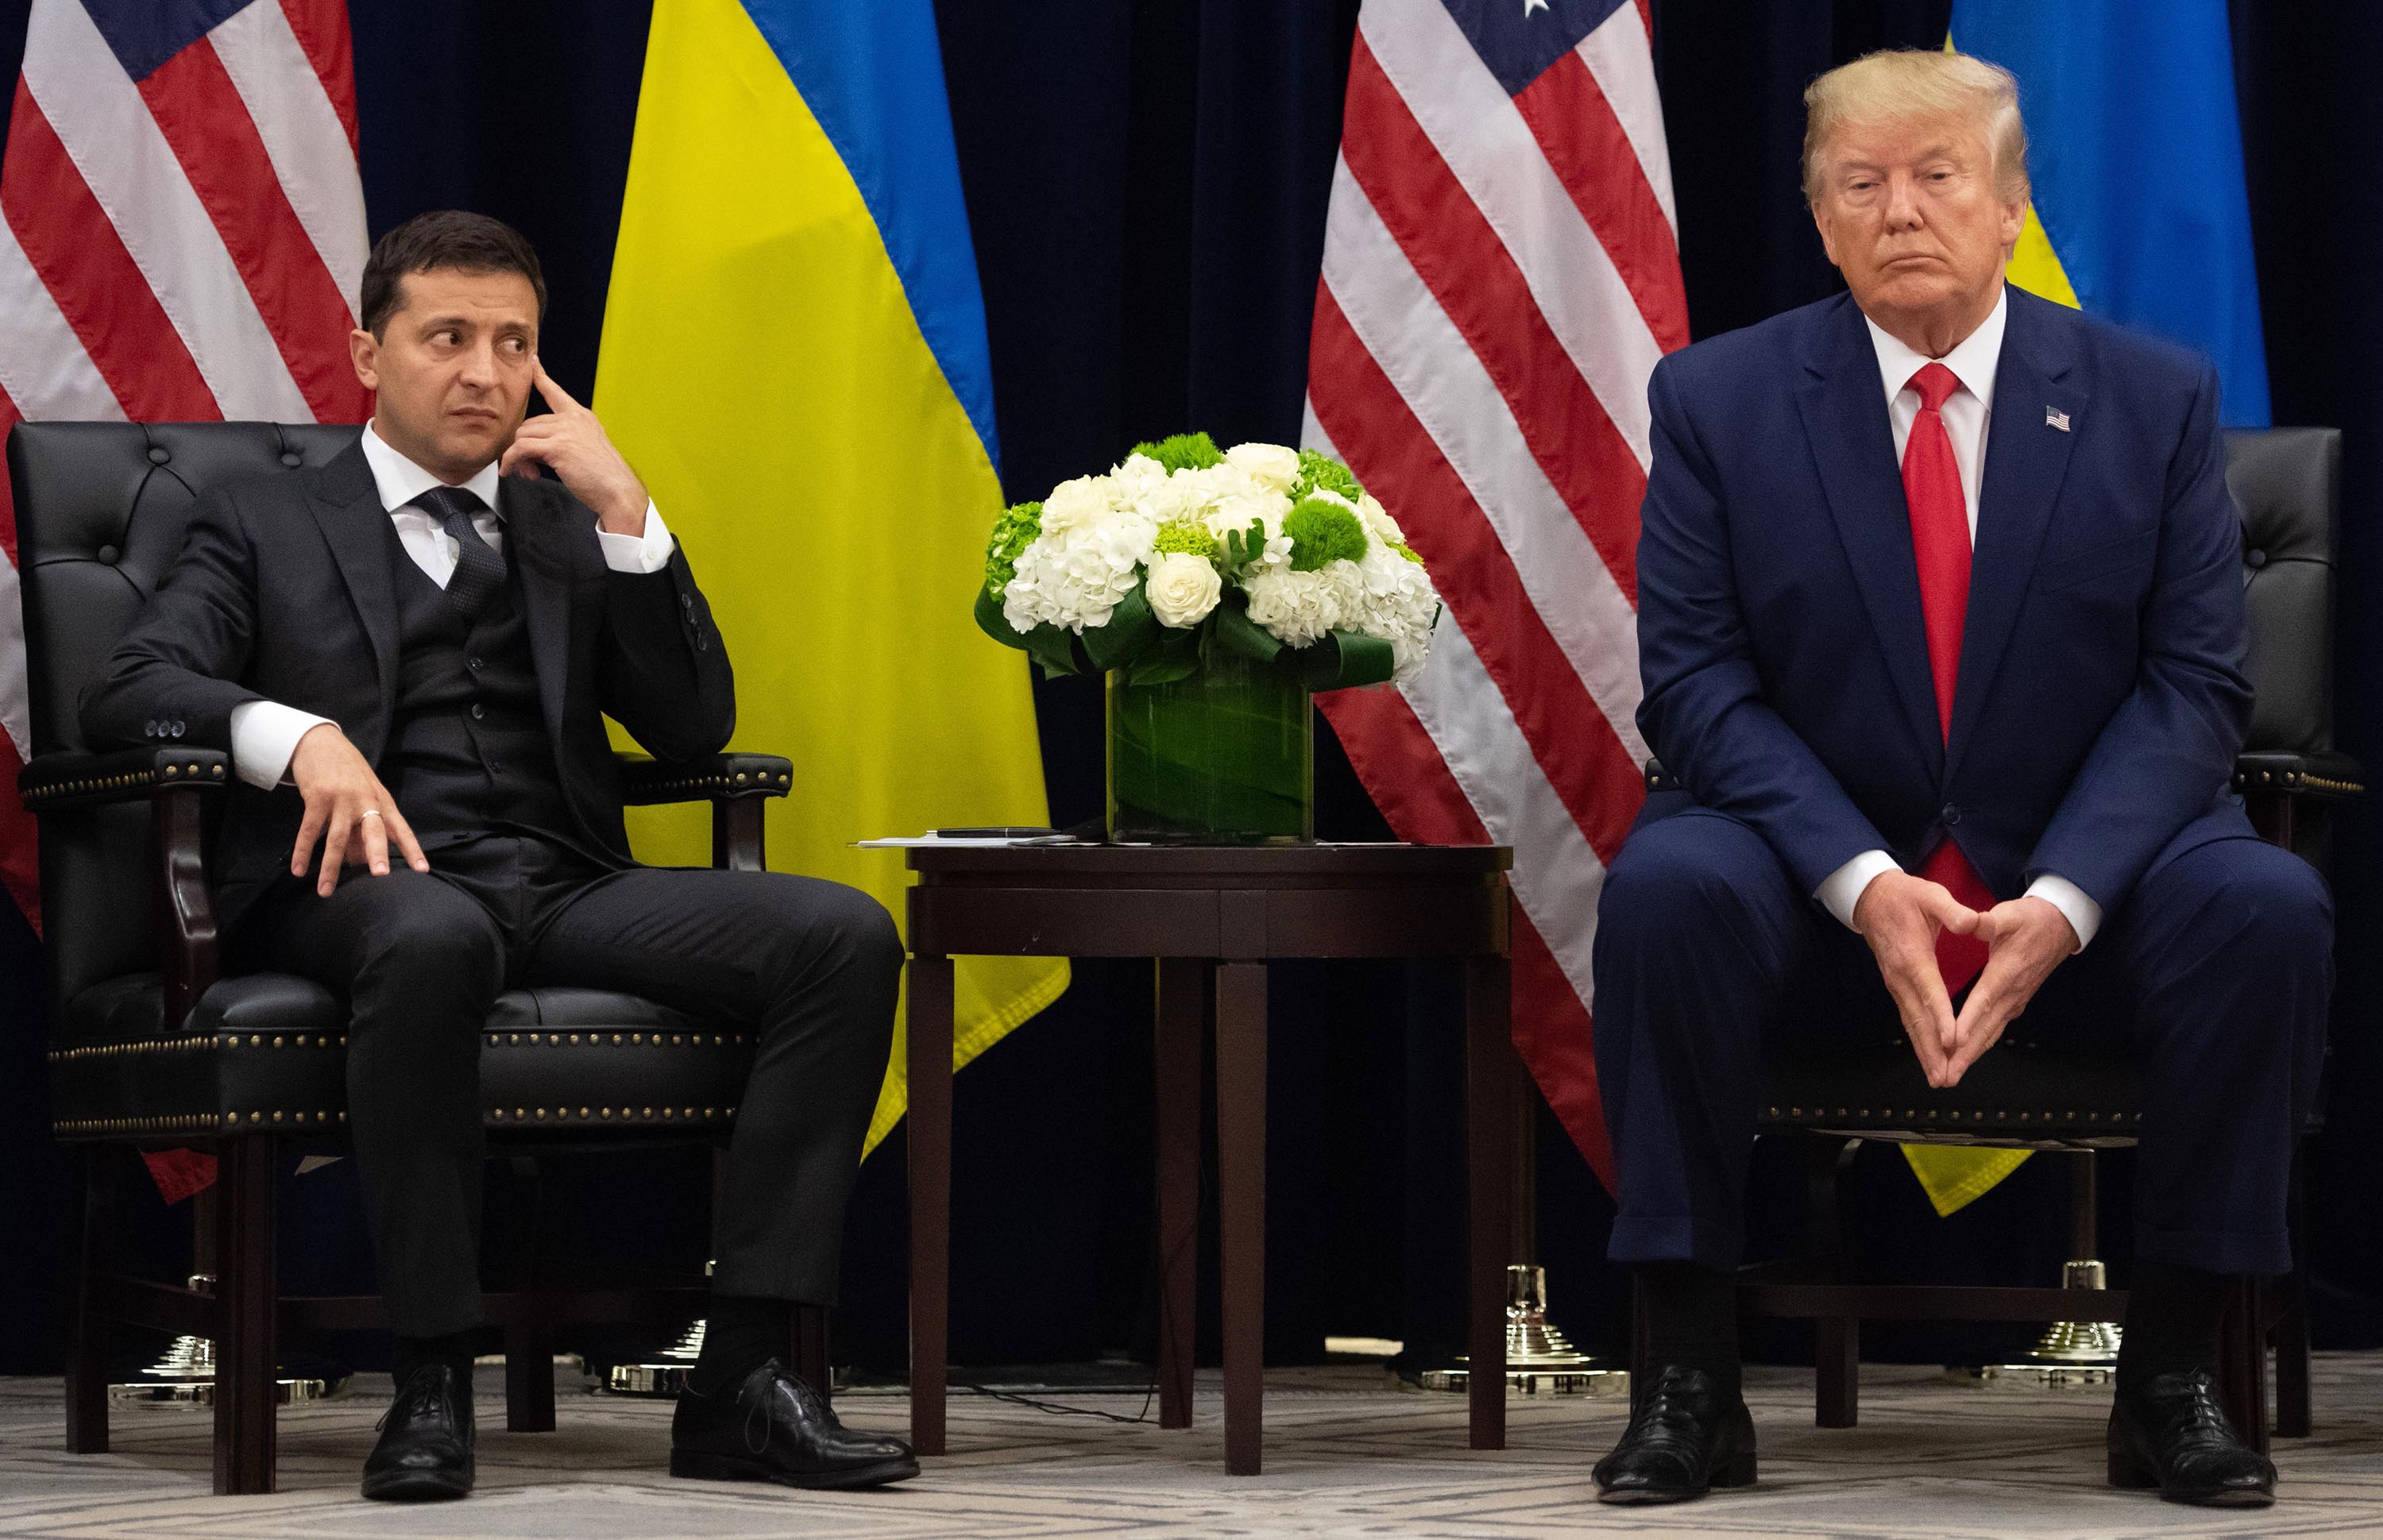 US President Donald Trump and Ukrainian President Volodymyr Zelensky looks on during a meeting in New York on September 25, 2019, on the sidelines of the United Nations General Assembly.